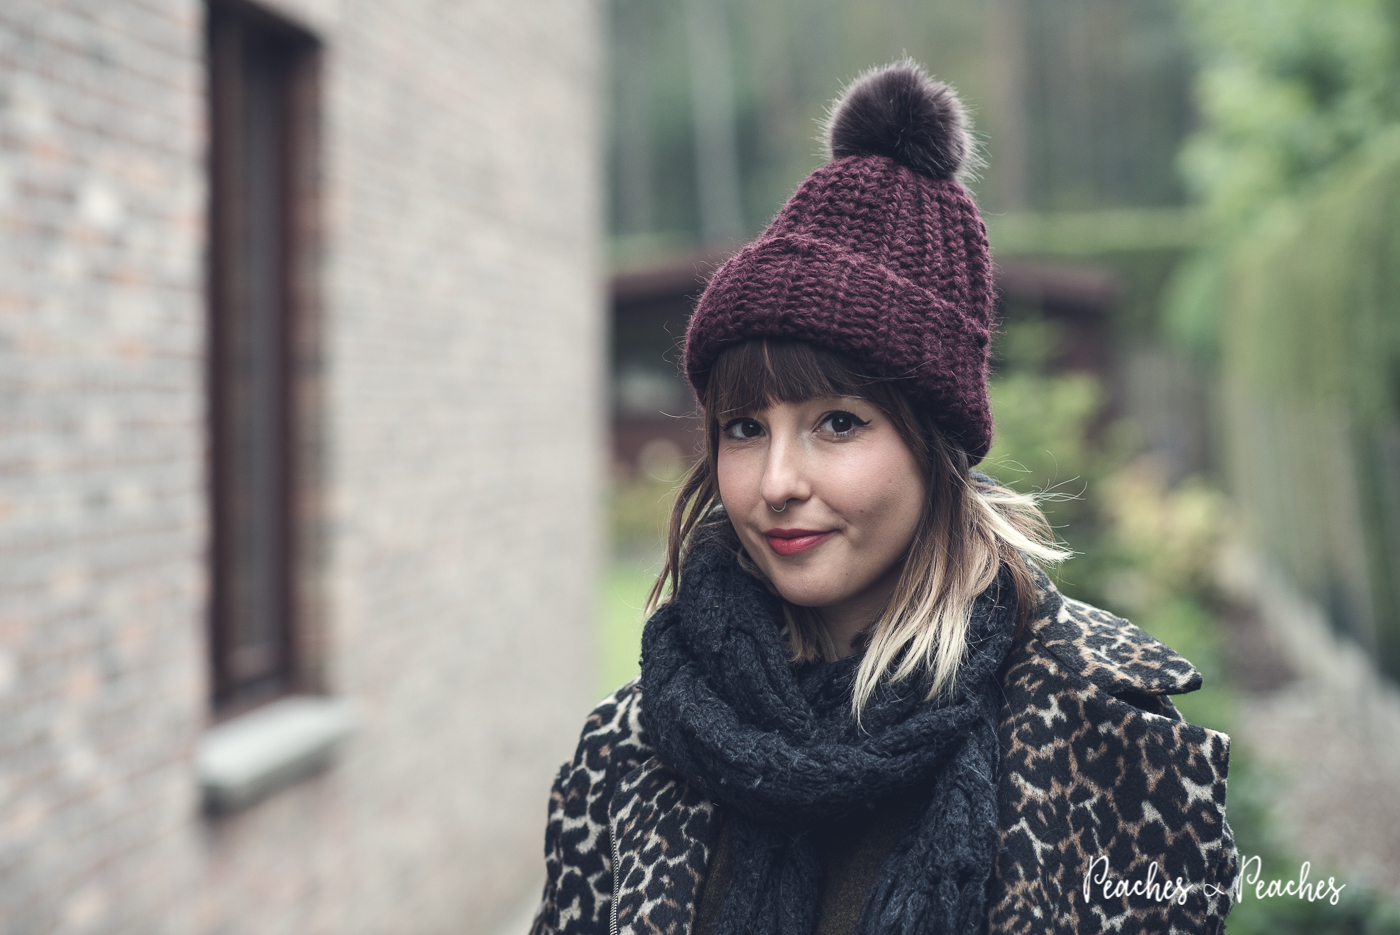 We Wear: Wannabe skater girl in Vans, leopard biker jacket and pom pom beanie